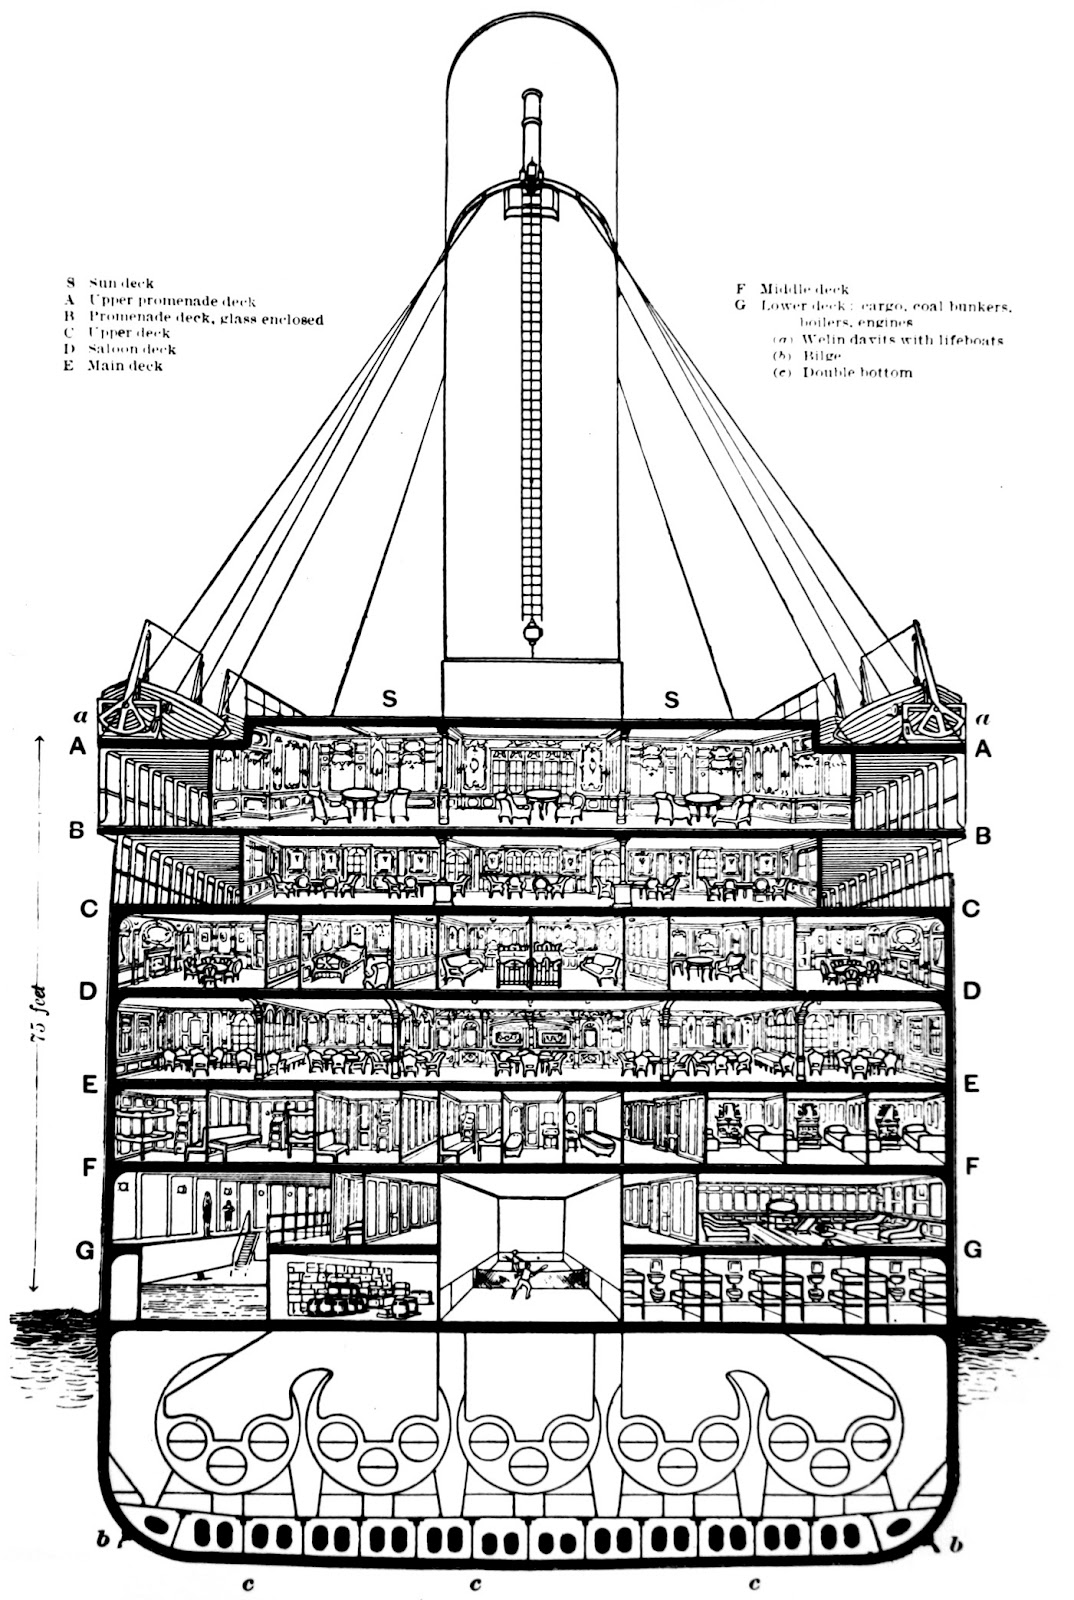 hight resolution of beam loading diagram shipping container wiring diagram hyster pallet jack wiring diagram 7 pin cargo trailer